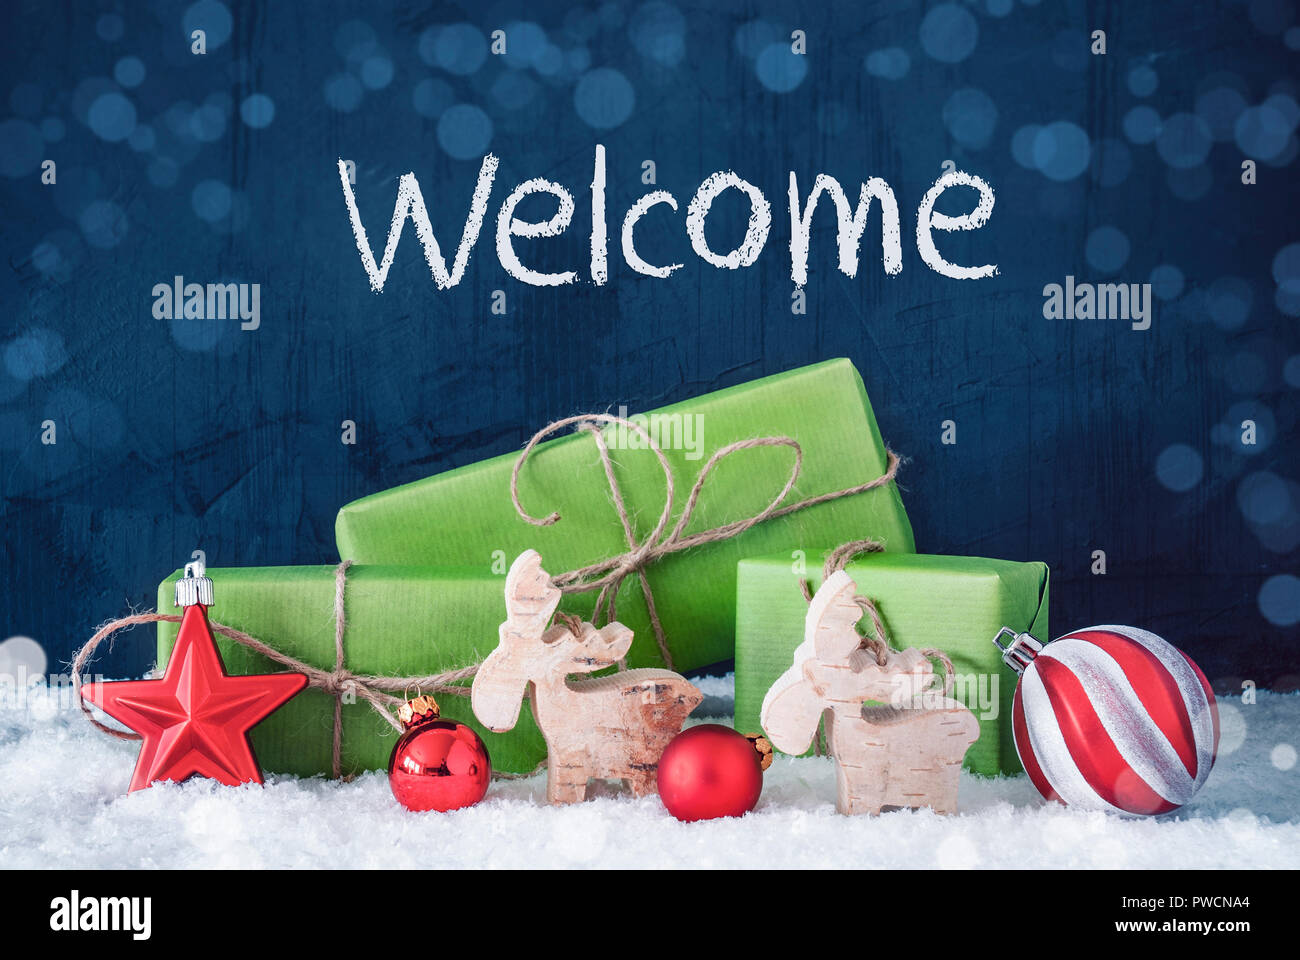 Green Christmas Gifts, Snow, Decoration, Text Welcome Stock Photo ...